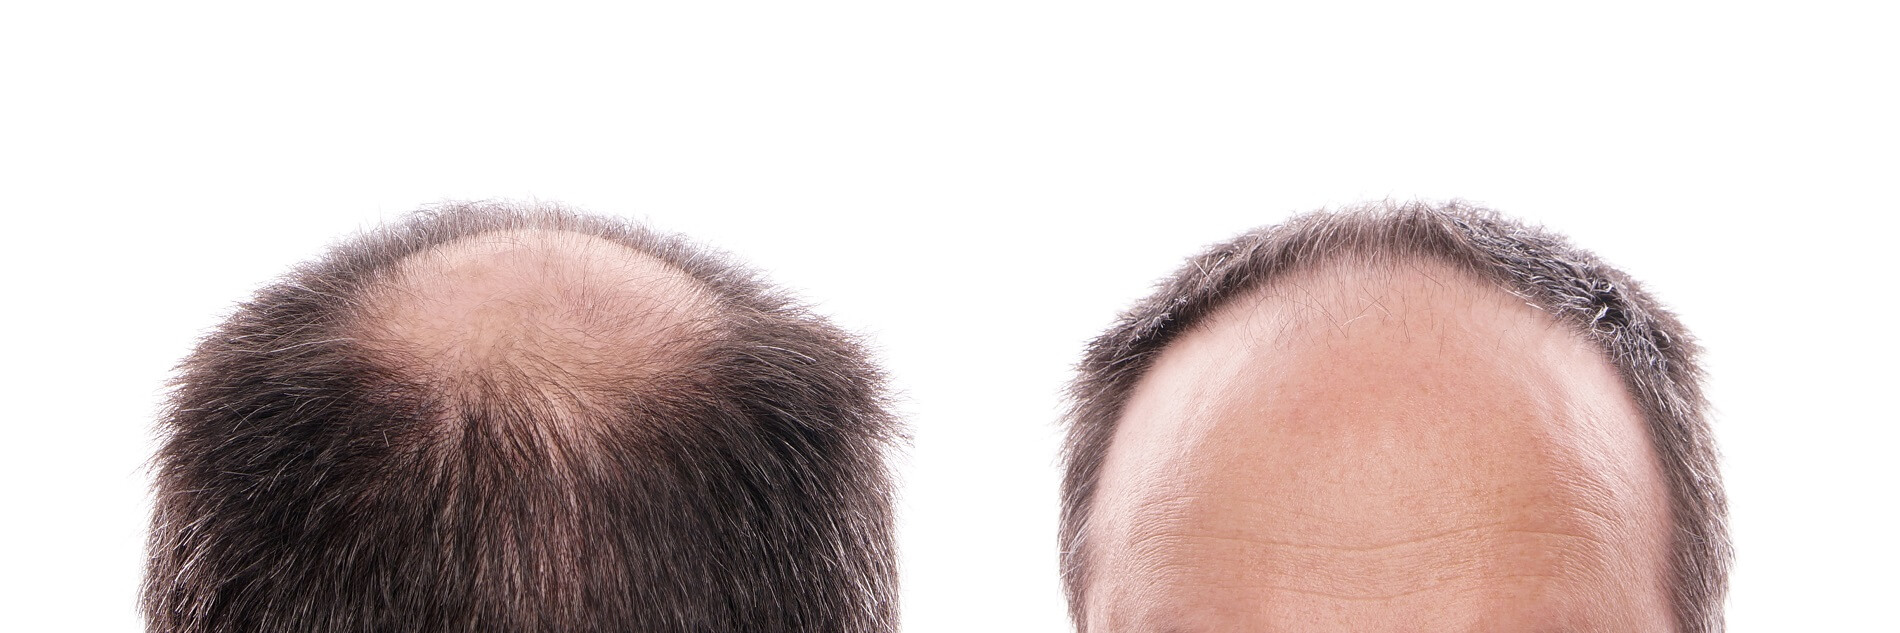 Hair Transplantation  in Turkey